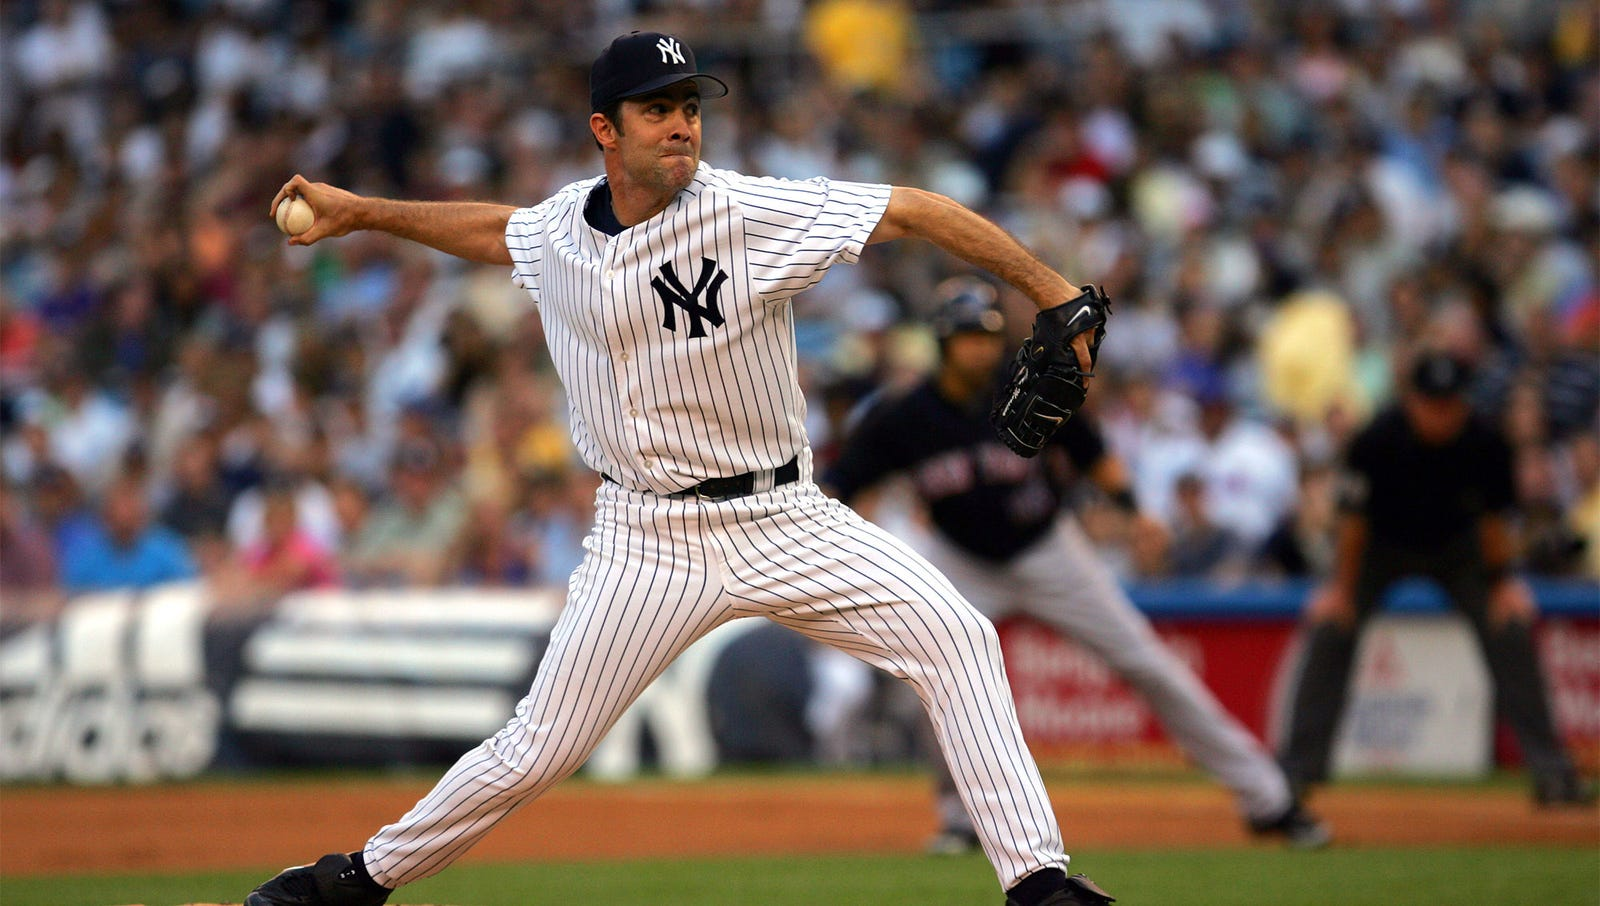 Mike Mussina: Facing an uphill battle, Mussina attempted to bolster his Hall of Fame candidacy by selecting Tom Glavine as his running mate ahead of the 2014 vote